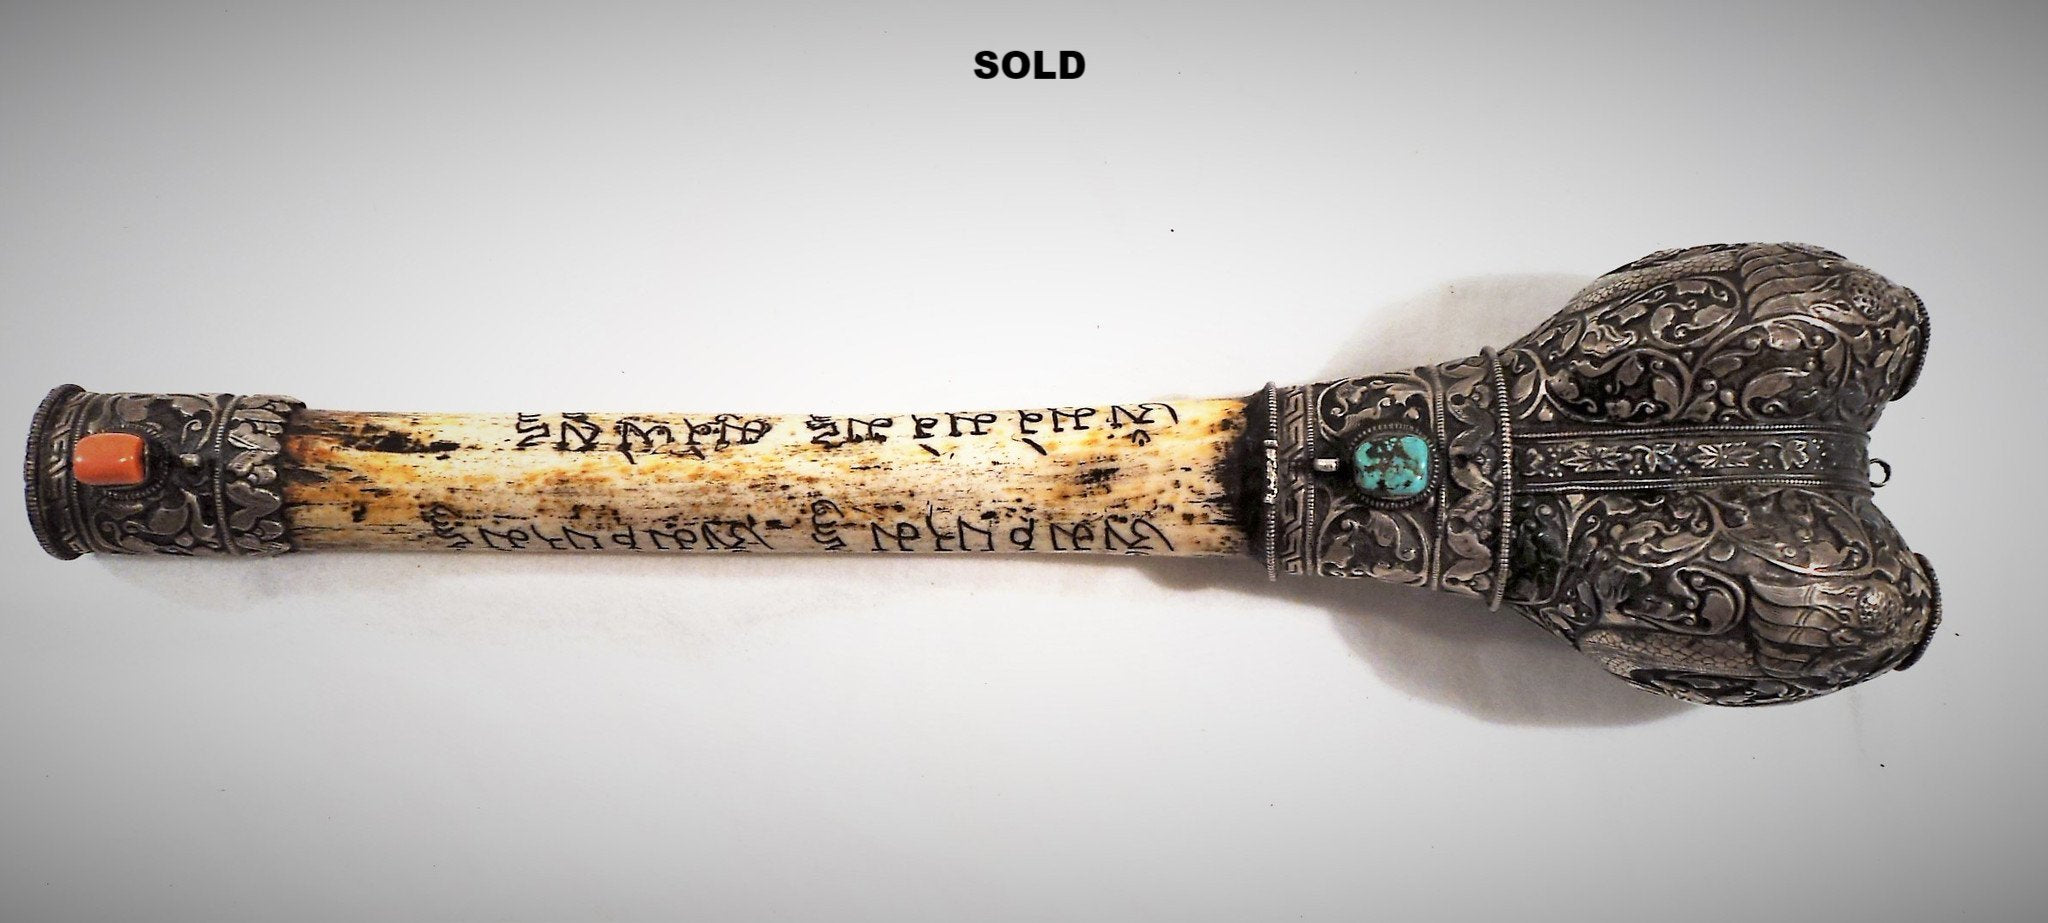 Antique Engraved Tibetan Bone Flute (Kangling) with Silver Repousse